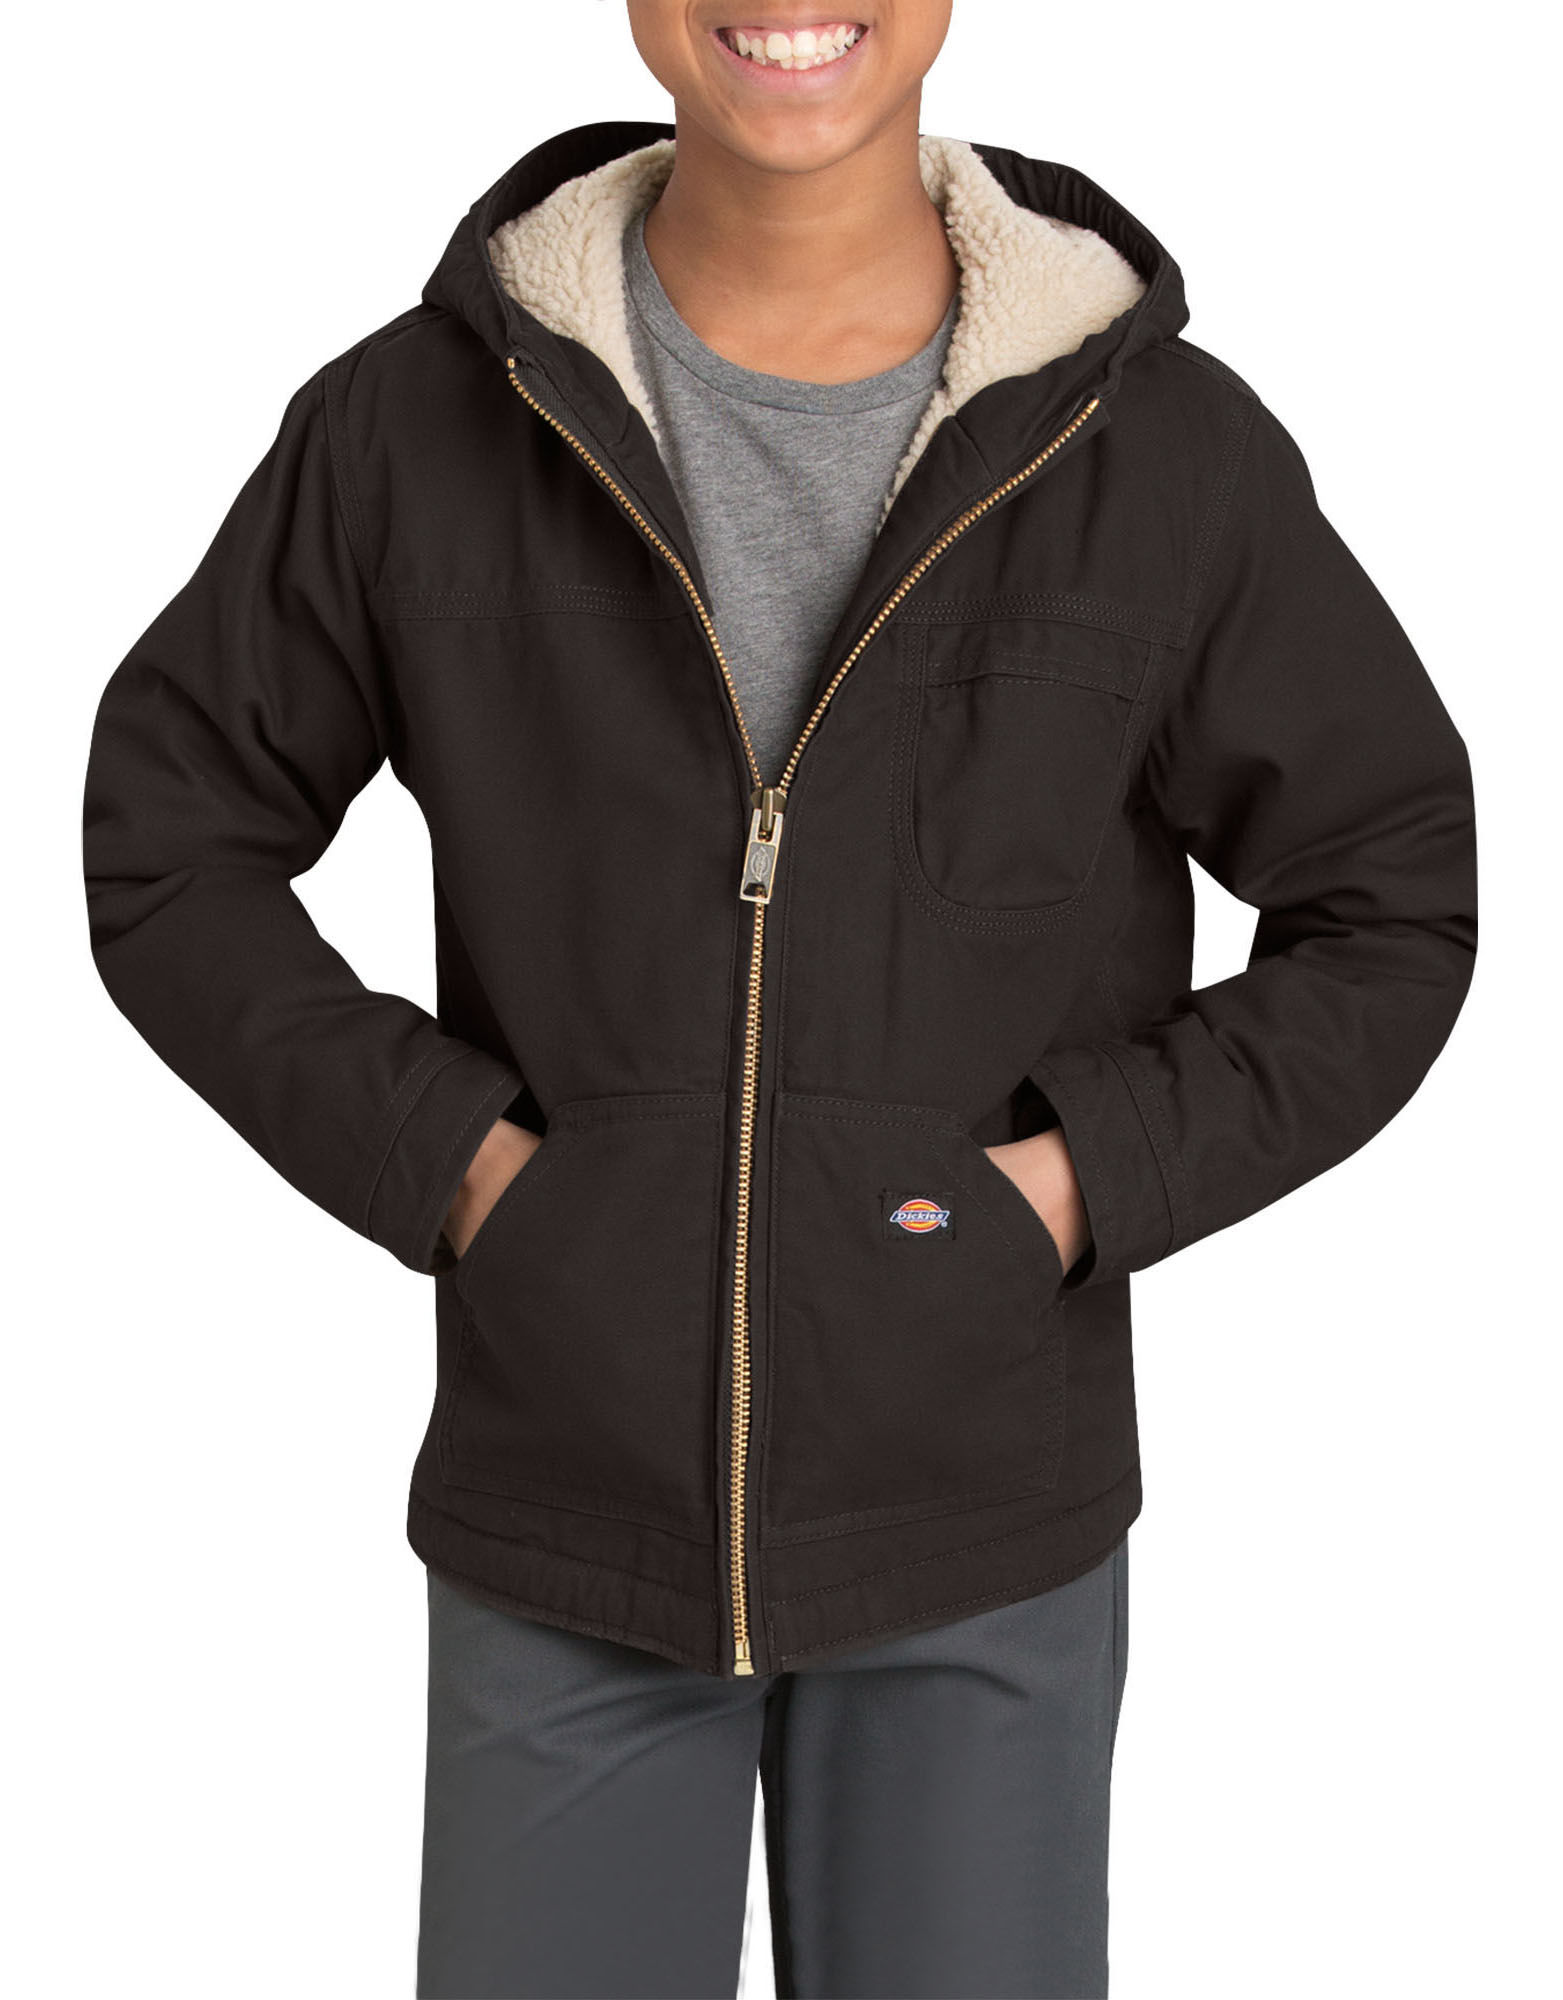 a9042c245 Add to My Lists. Dickies Boys Sherpa Lined Duck Jacket